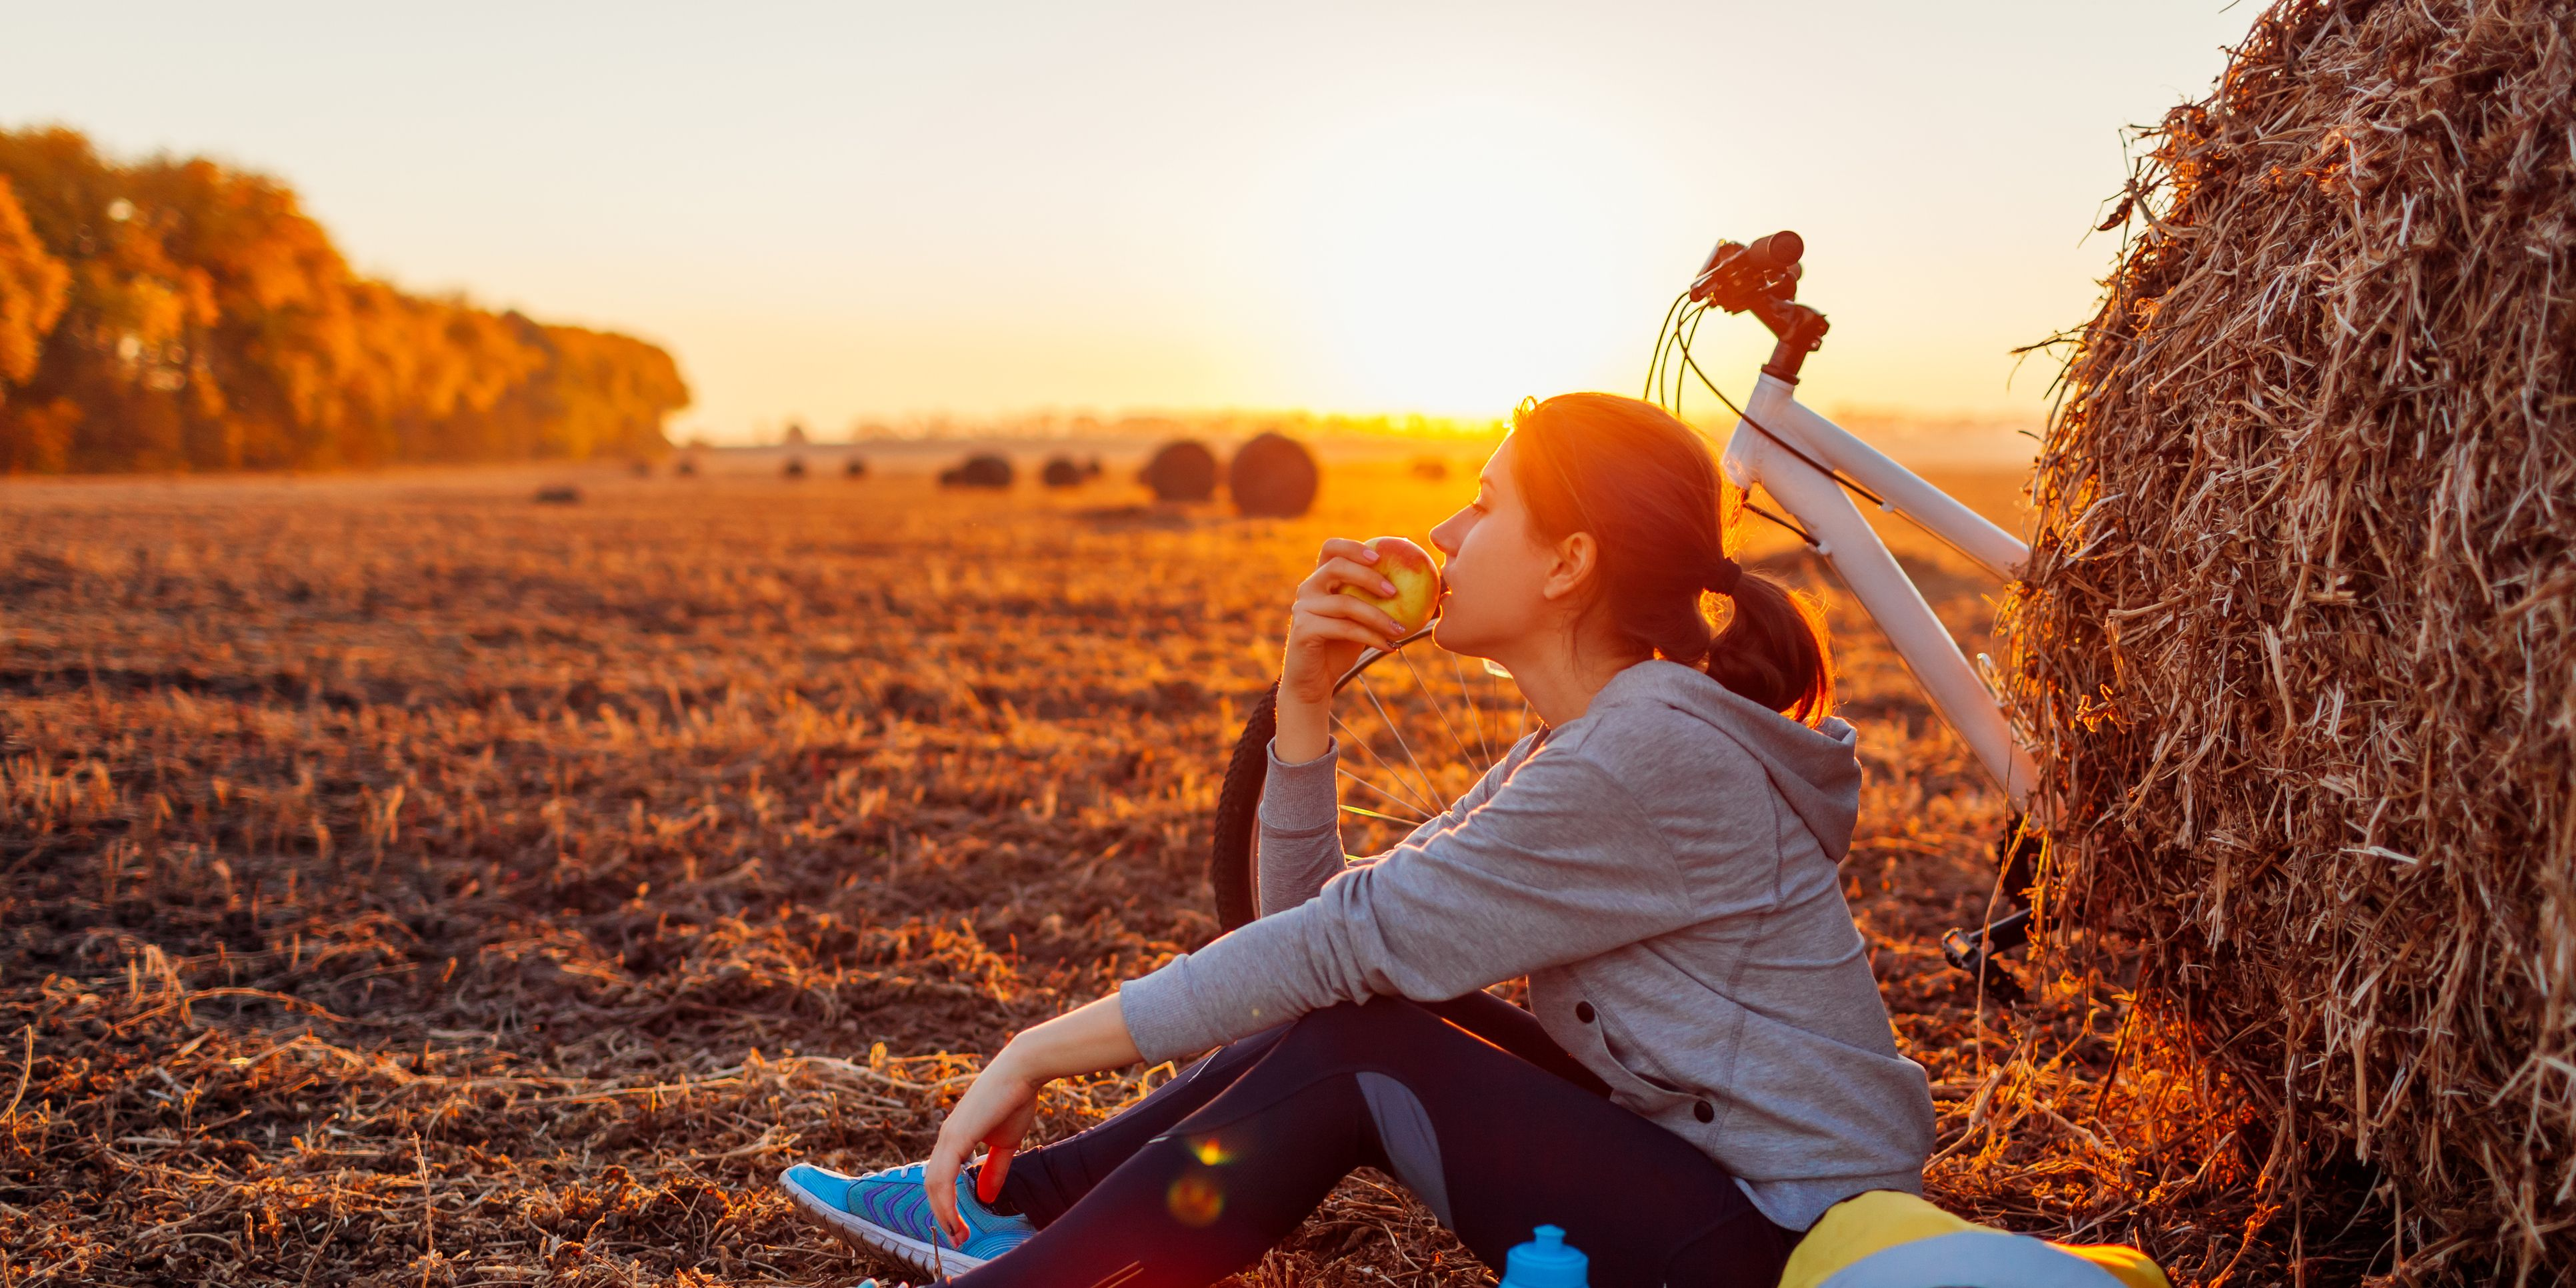 Young bicyclist having rest after a ride in autumn field at sunset. Woman eating by haystack